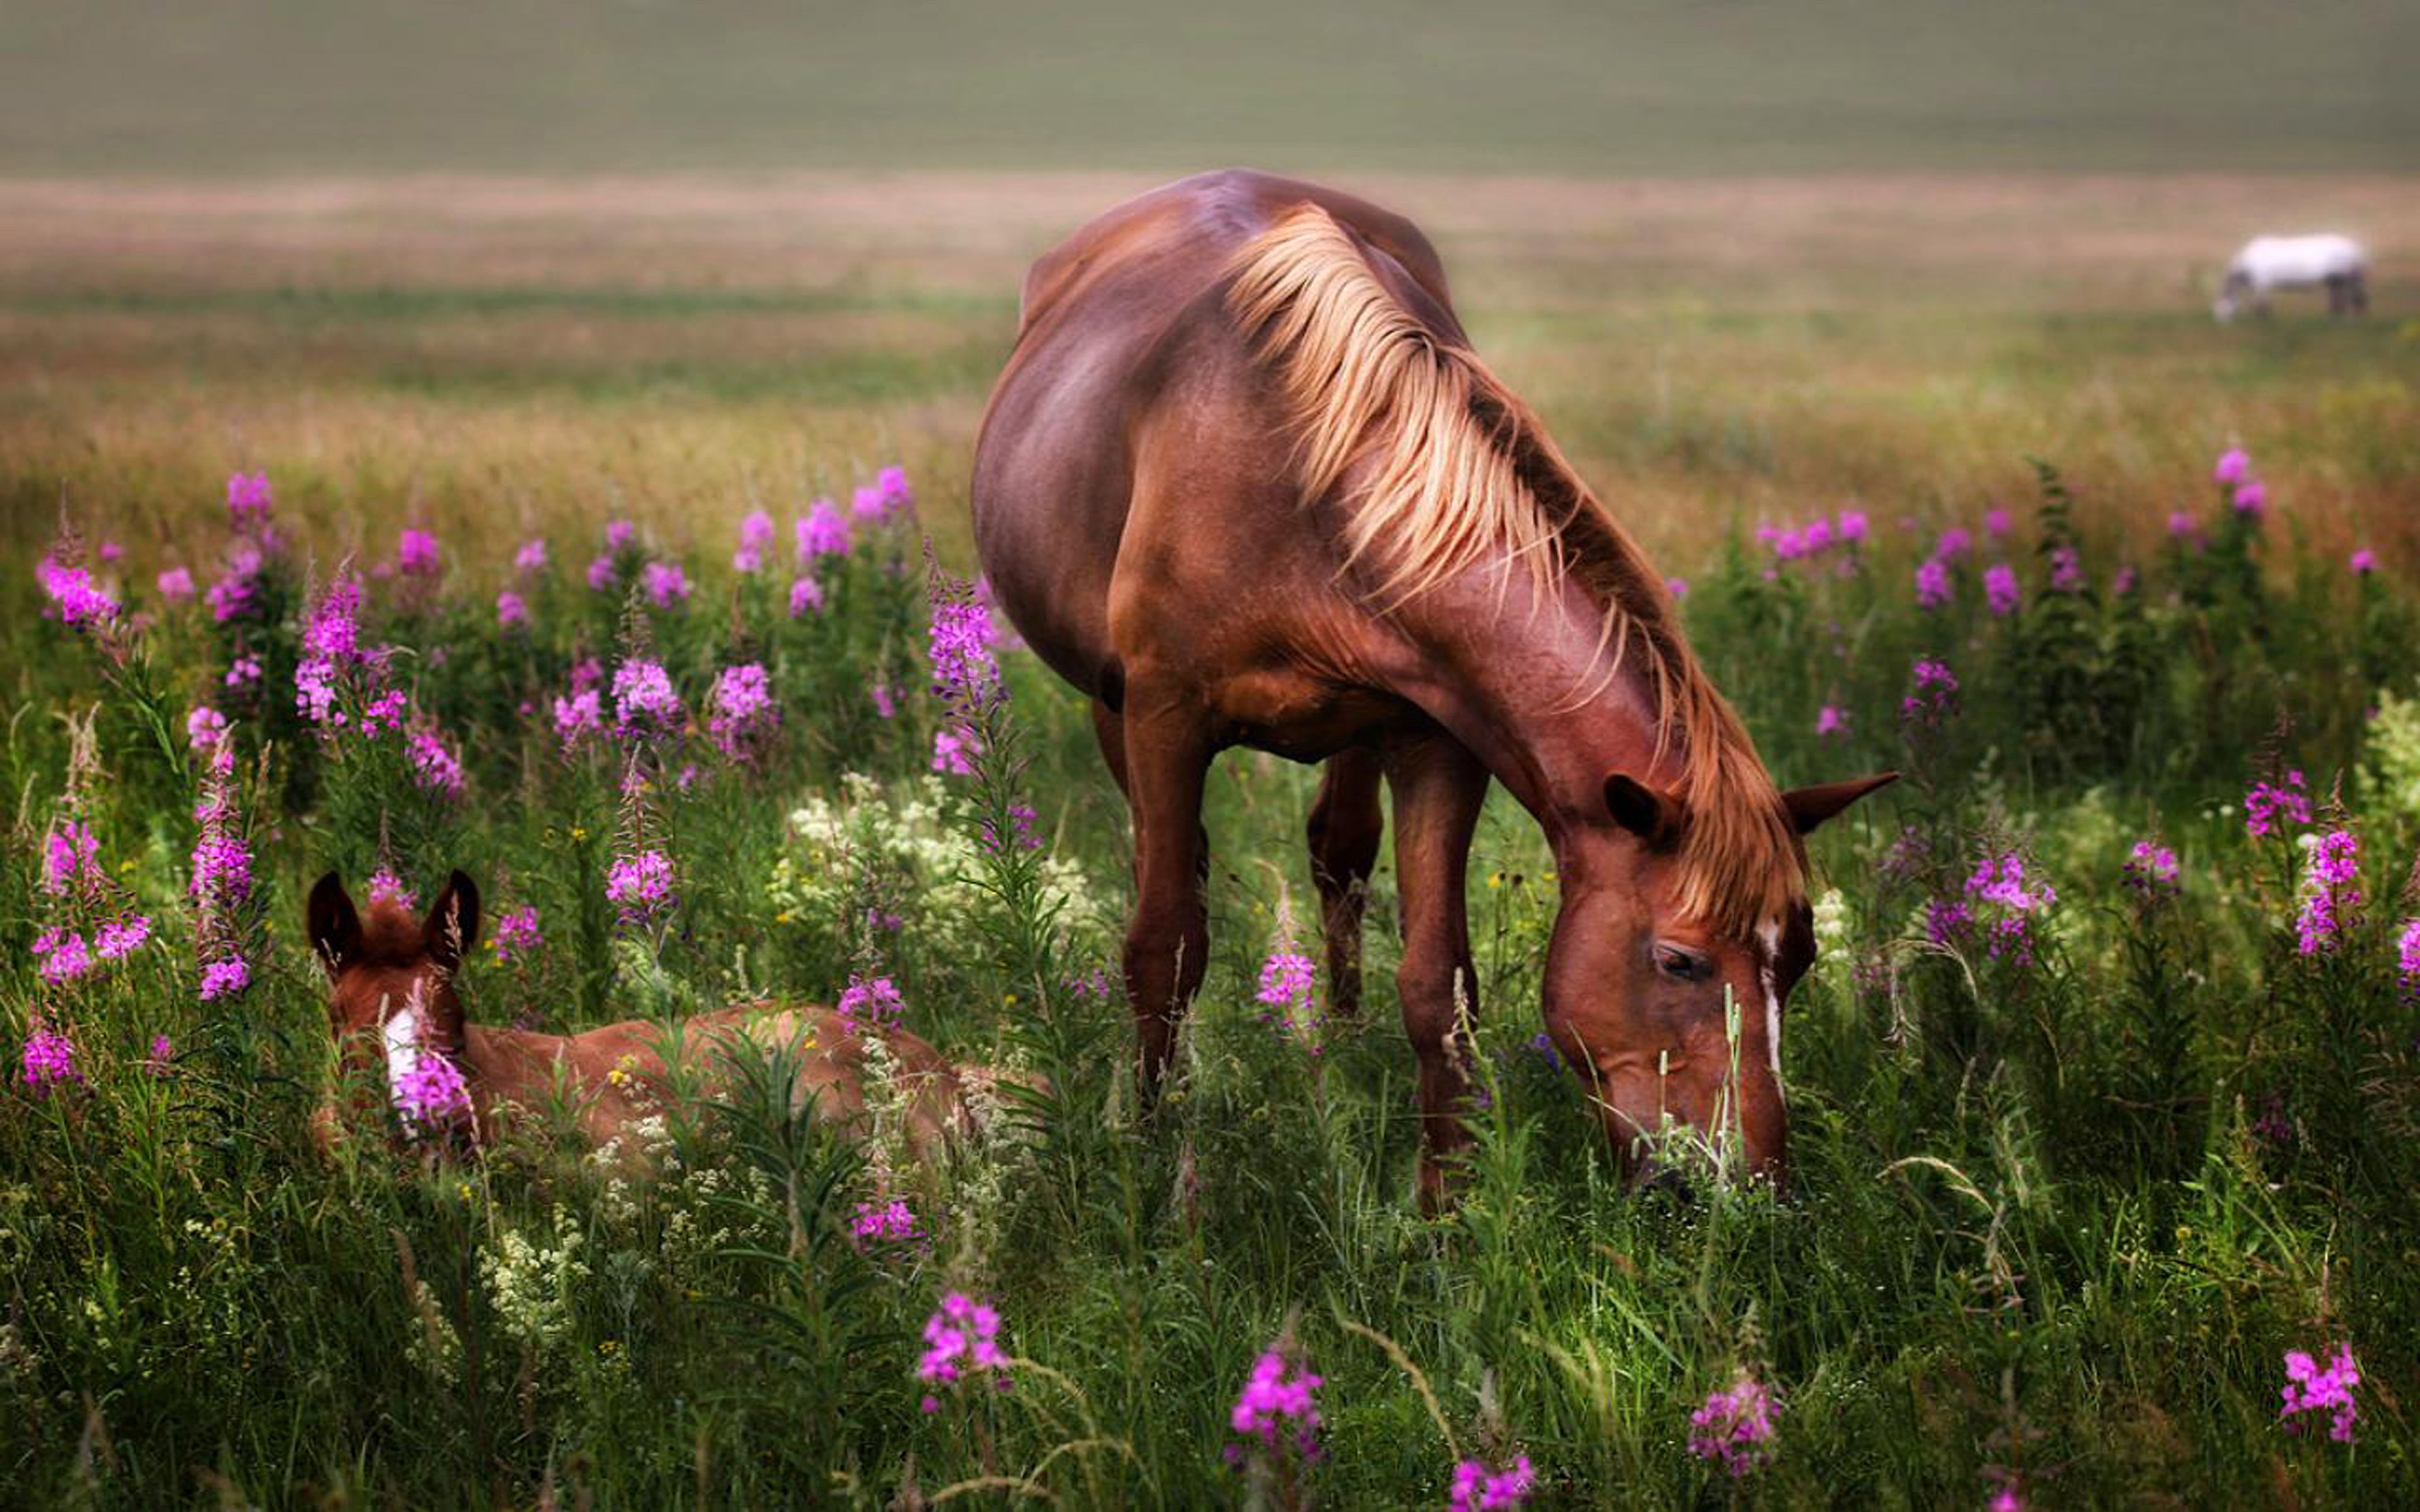 Amazing Wallpaper Horse Rose - ab243f7c3657986e2e8986158061f679  Image_3853.jpg